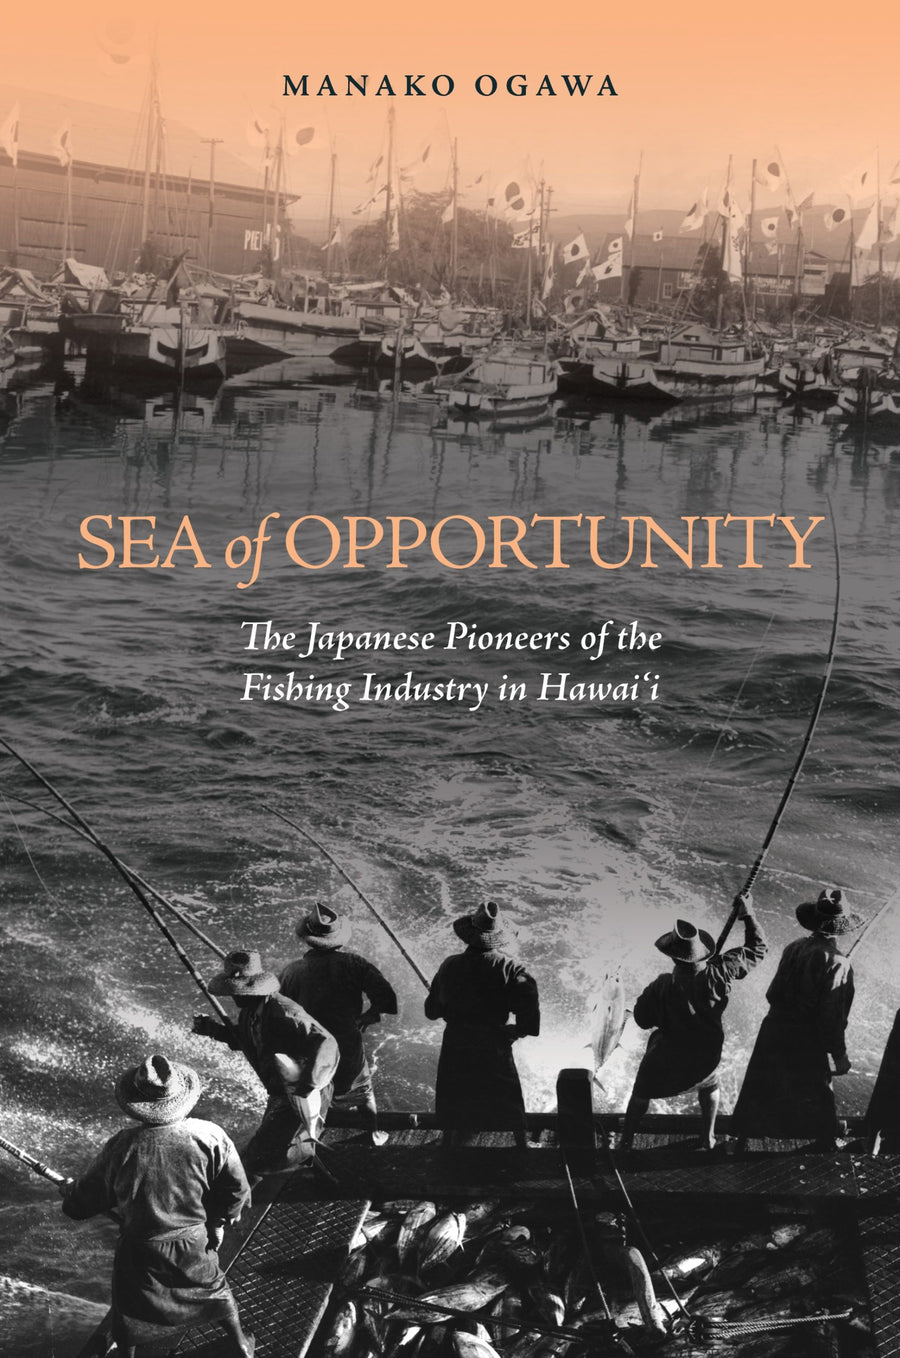 Sea of Opportunity: The Japanese Pioneers of the Fishing Industry in Hawaiʻi